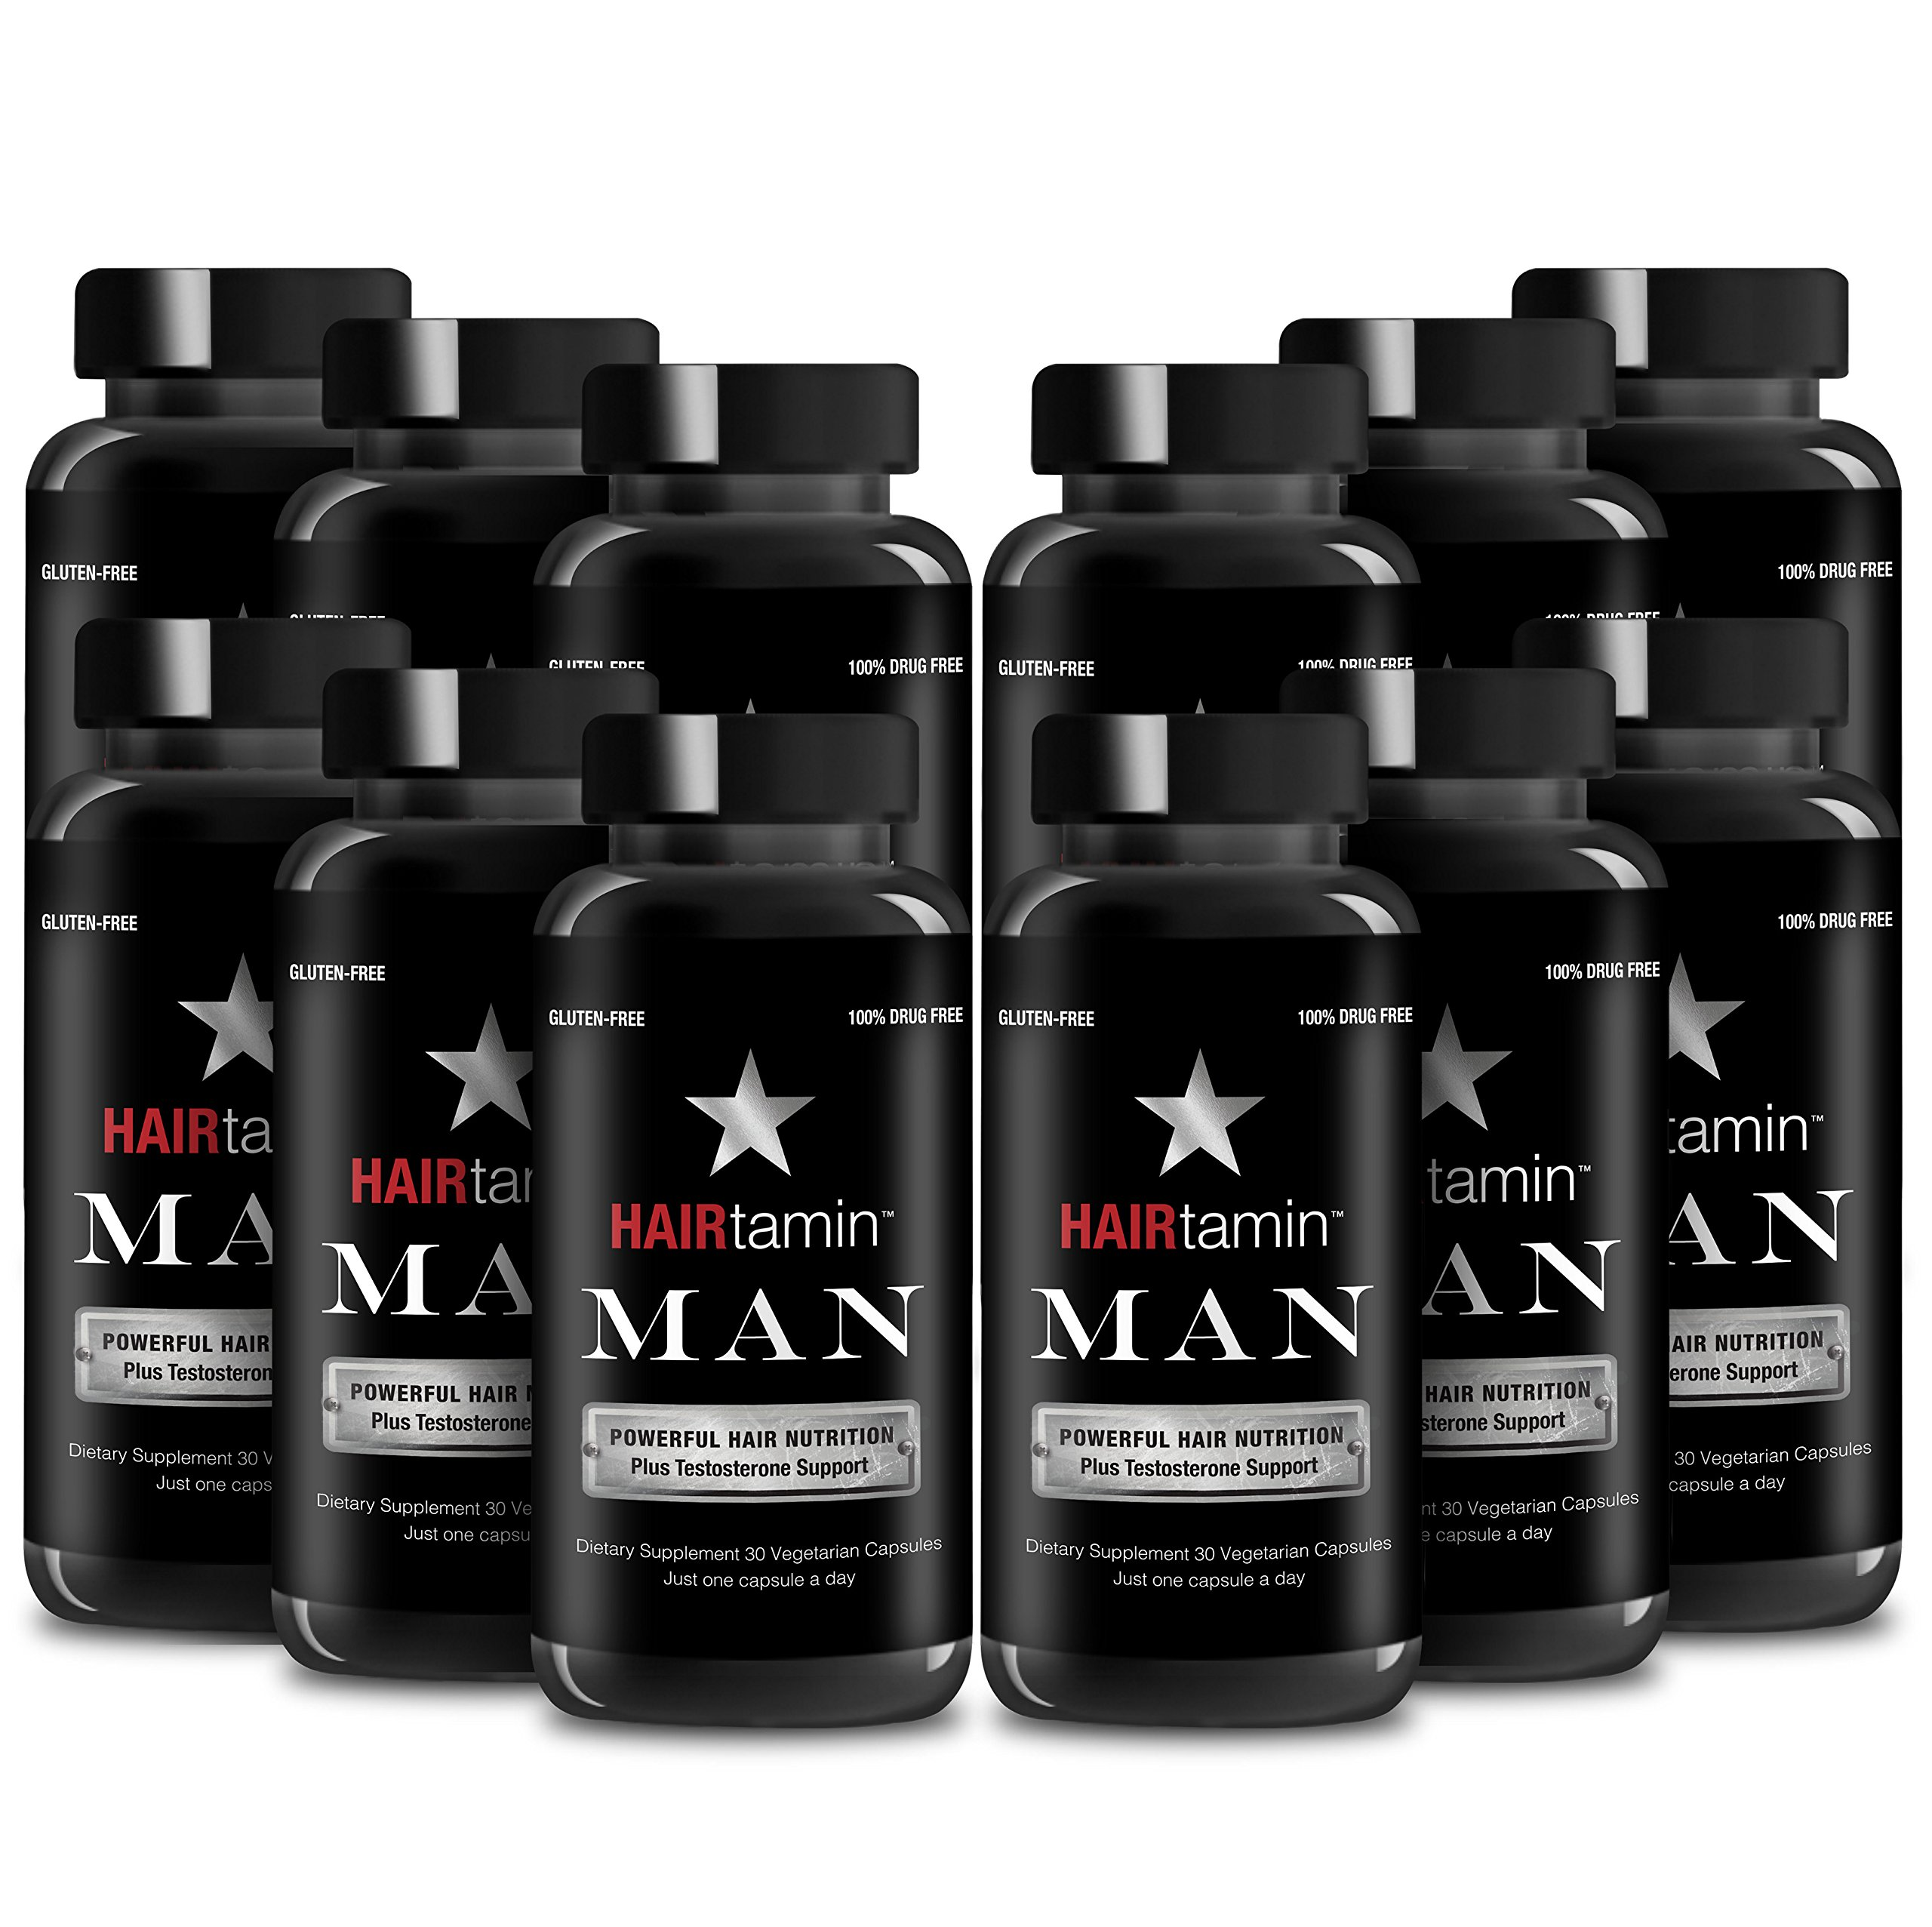 HAIRtamin MAN Formula - Fast Hair Growth Biotin Vitamins Gluten Free thirty Vegetarian Capsules Supports Stronger Longer Thicker Hair Reduces Hair Loss and Thinning All Natural Supplement twelve pack